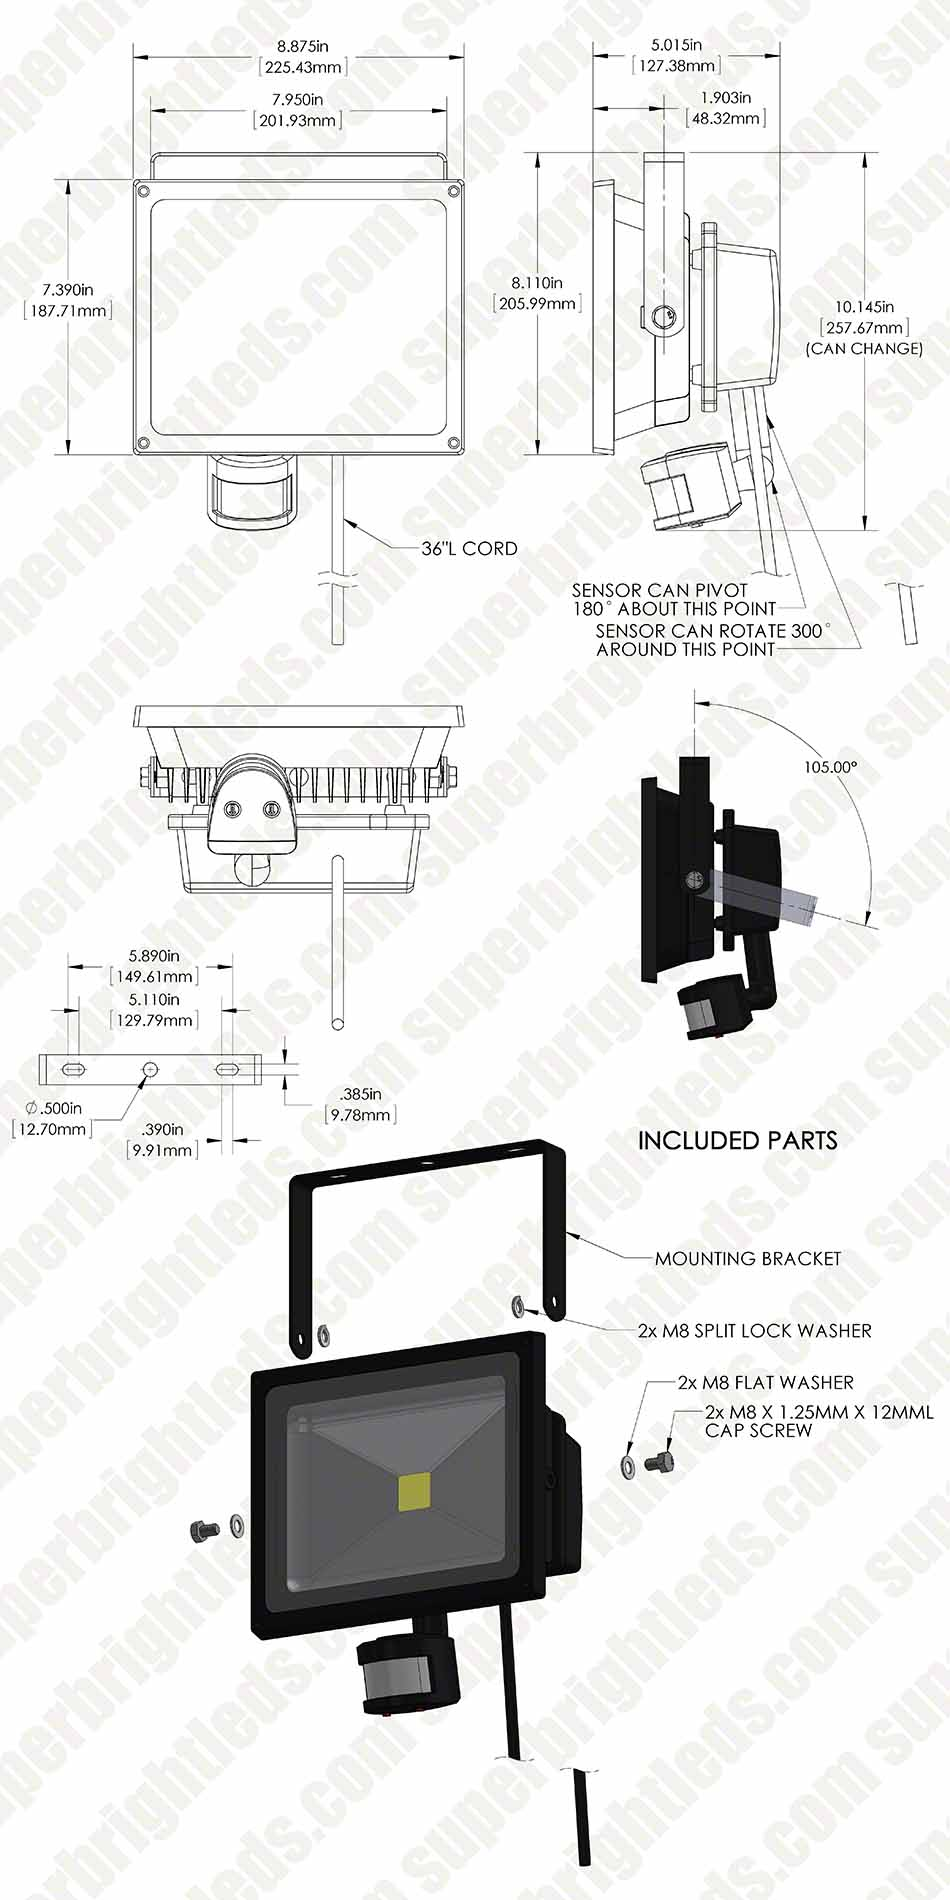 30 Watt High Power LED Flood Light Fixture with Motion